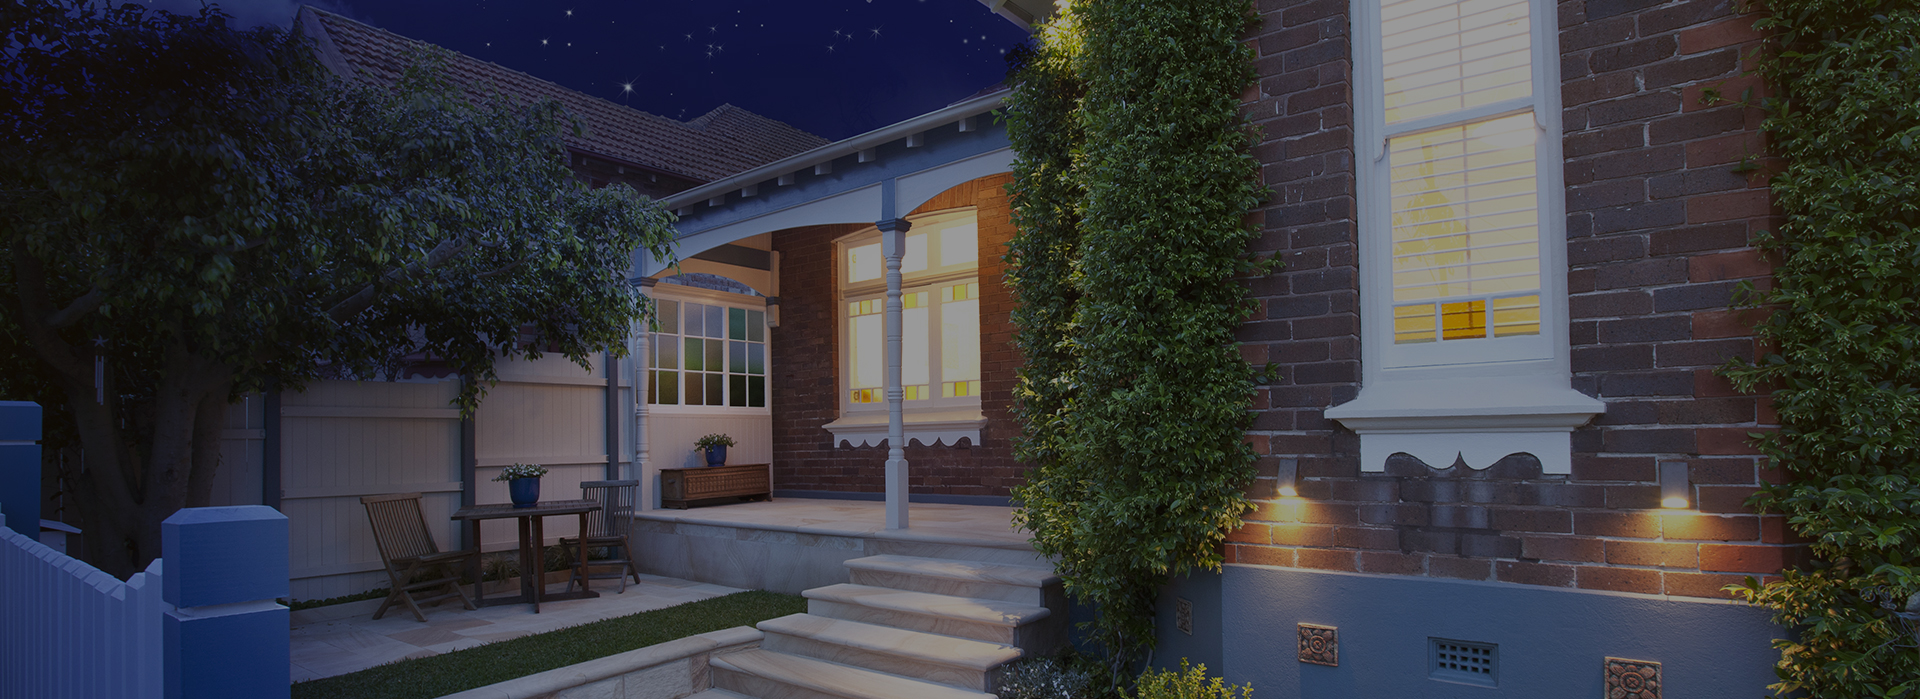 BYRR_Internal-Page_house-by-night